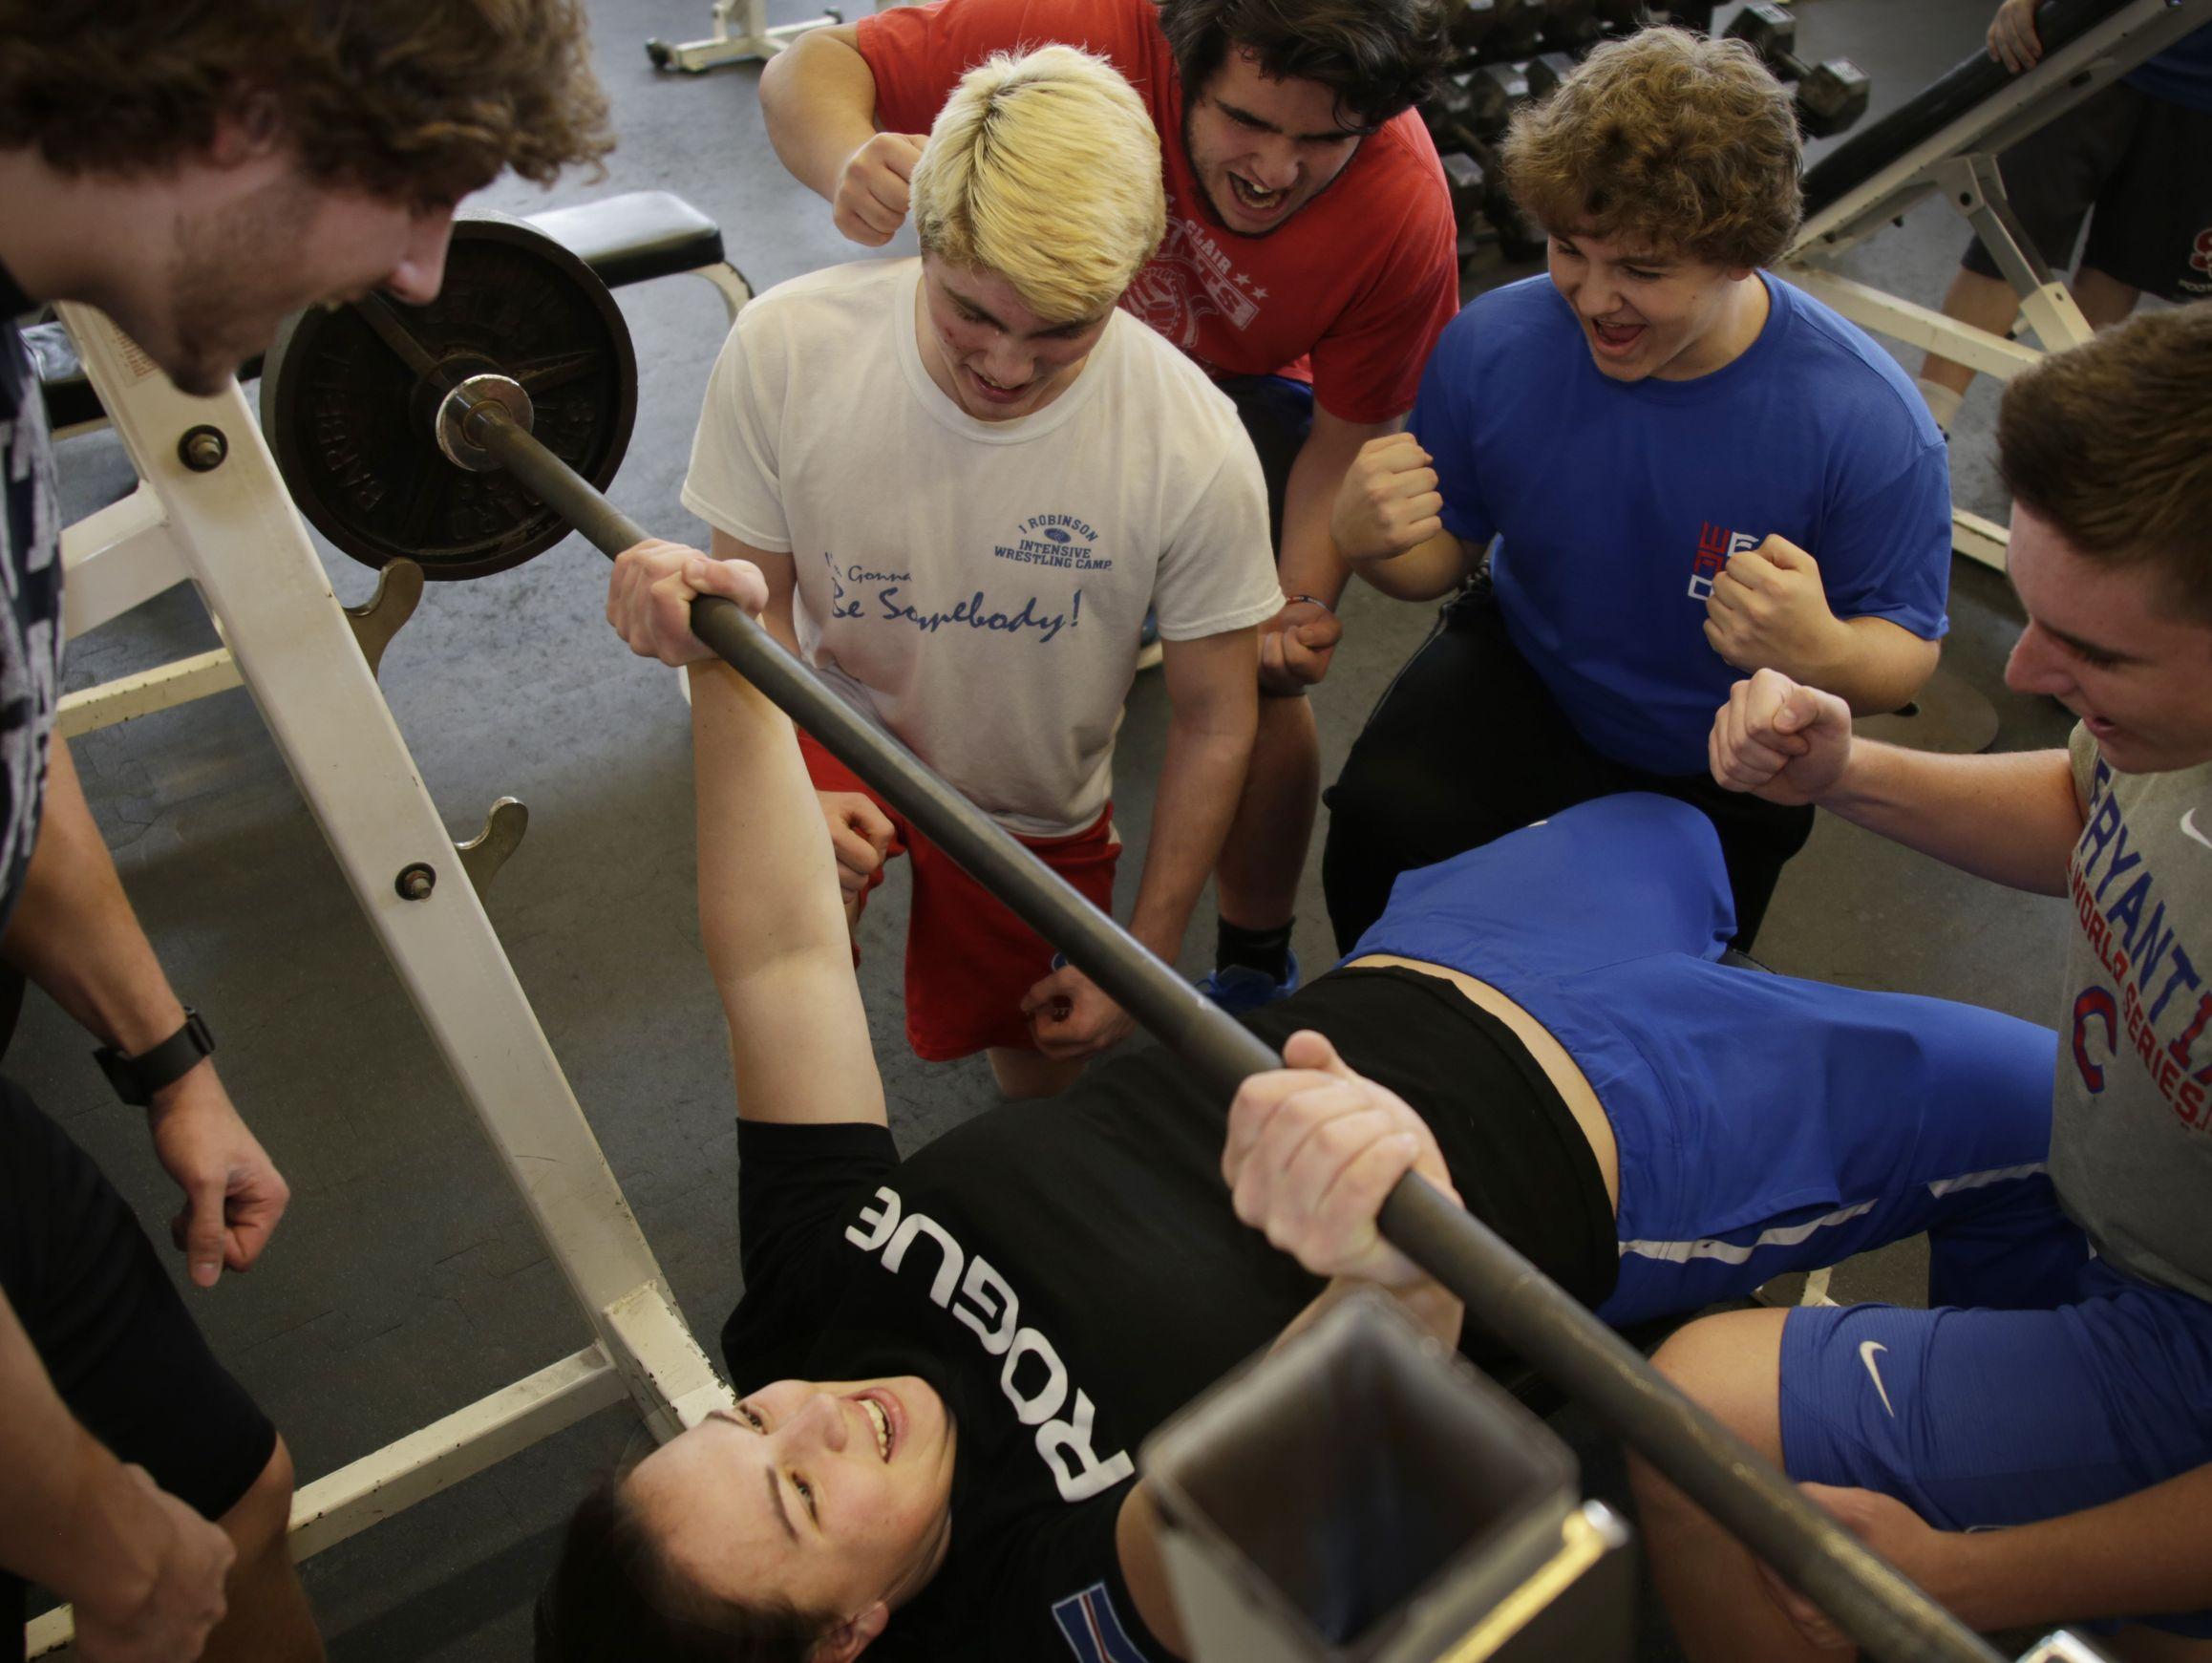 16-year-old Molly Likins of St. Clair, who has undergone a Cochlear implant, just set the state powerlifting bench press record and gets some encouragement as she lifts during a photo shoot by some members of the St. Clair Saints football team at St. Clair High School Tuesday Mar. 14, 2017.